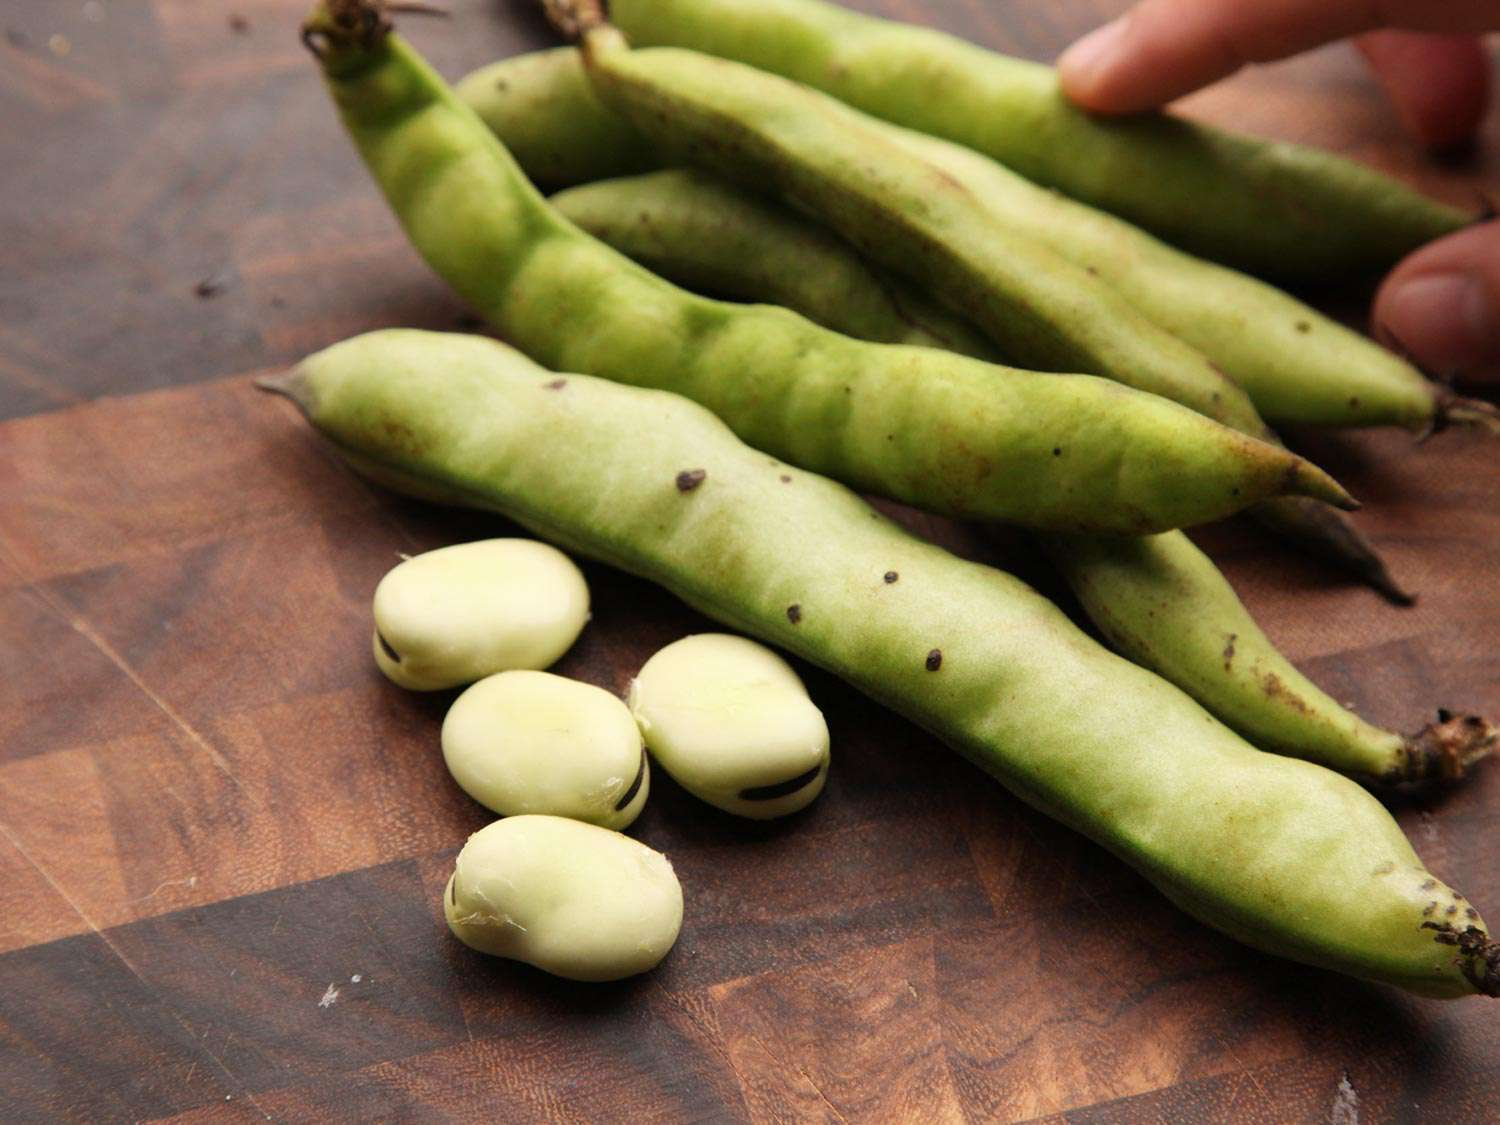 20150504-how-to-prepare-spring-green-produce04.jpg